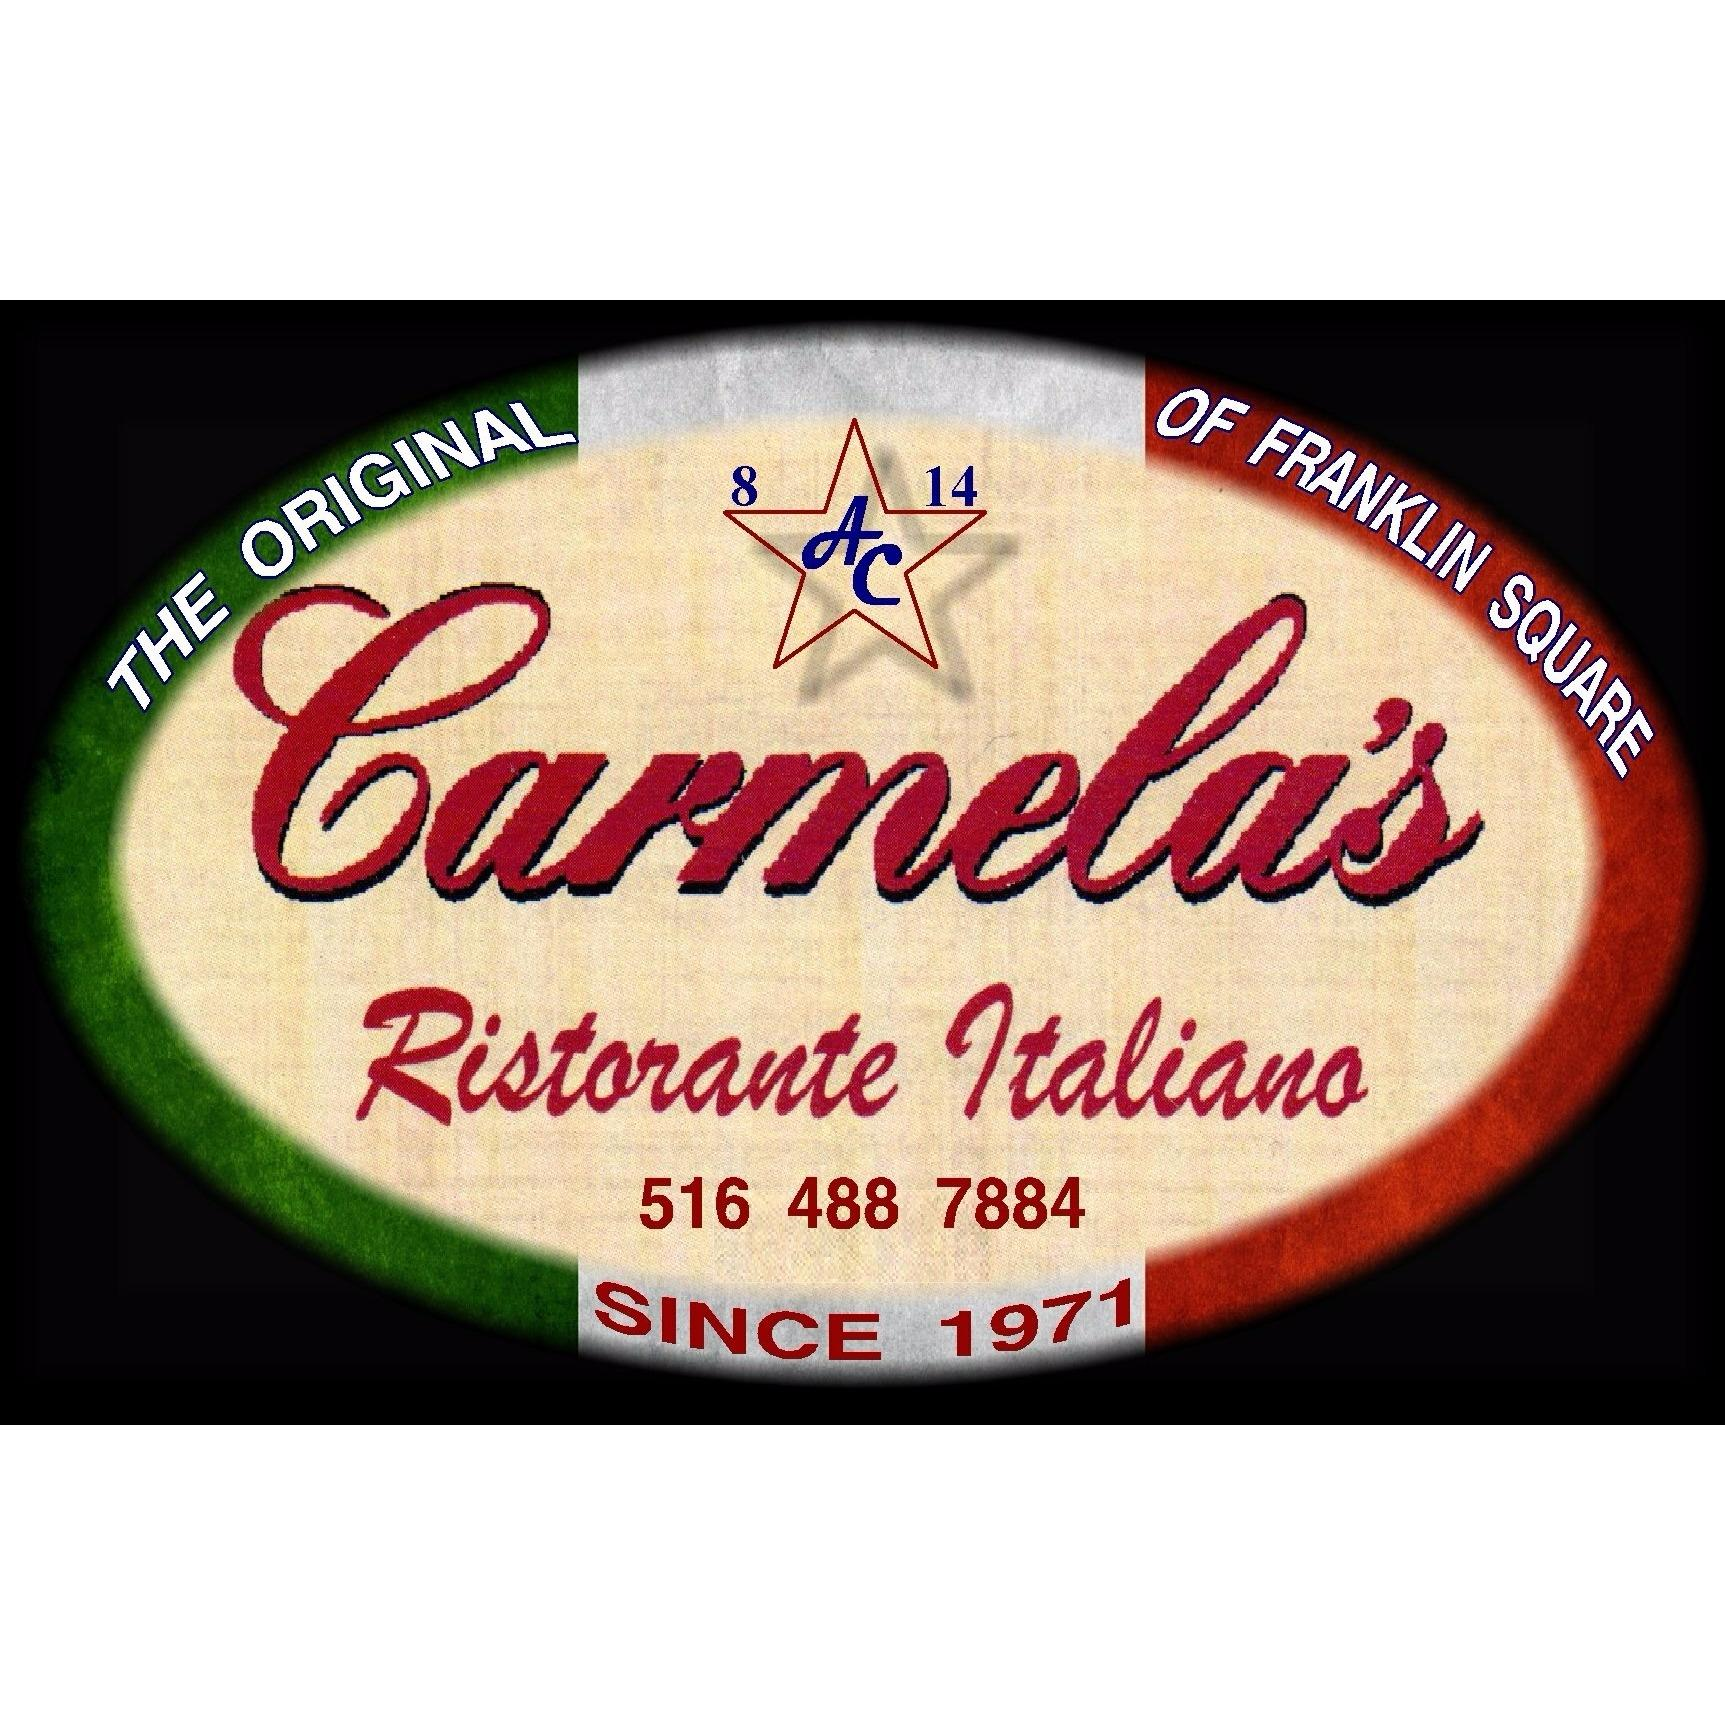 Carmela's Pizzeria - Franklin Square, NY - Restaurants